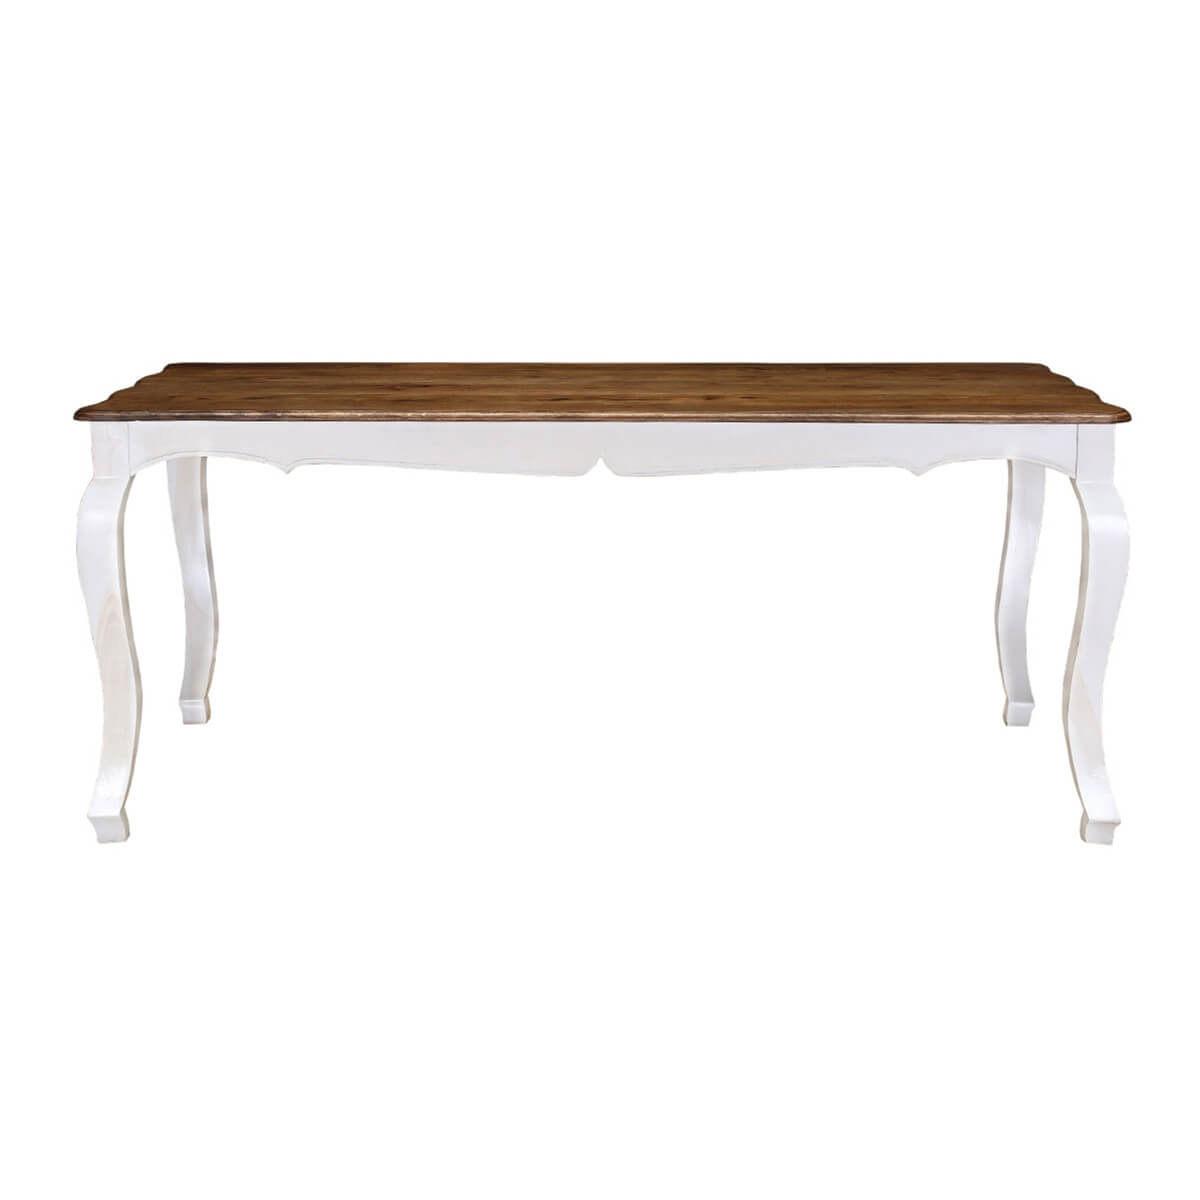 Rehoboth 72 White And Natural Wood Cabriole Leg 6 Seat Dining Table